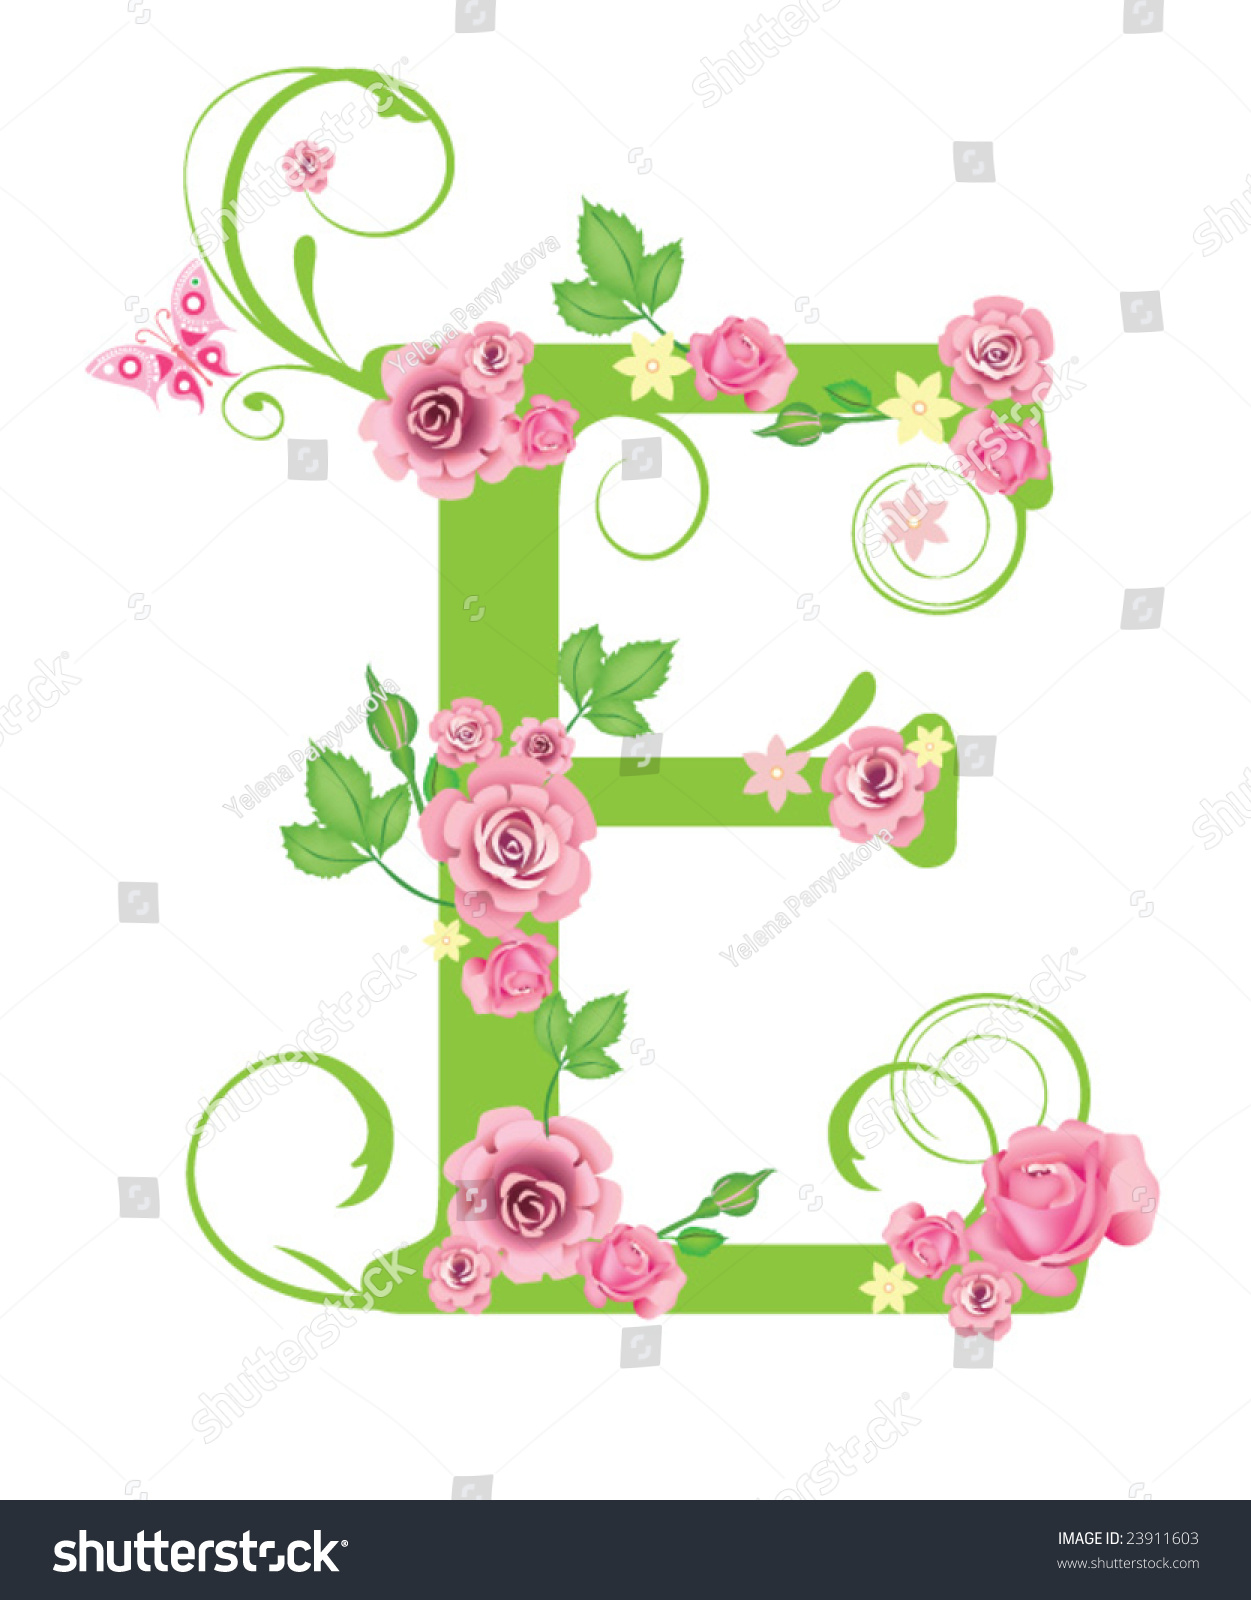 Letter E With Roses For Design Stock Vector Illustration ...